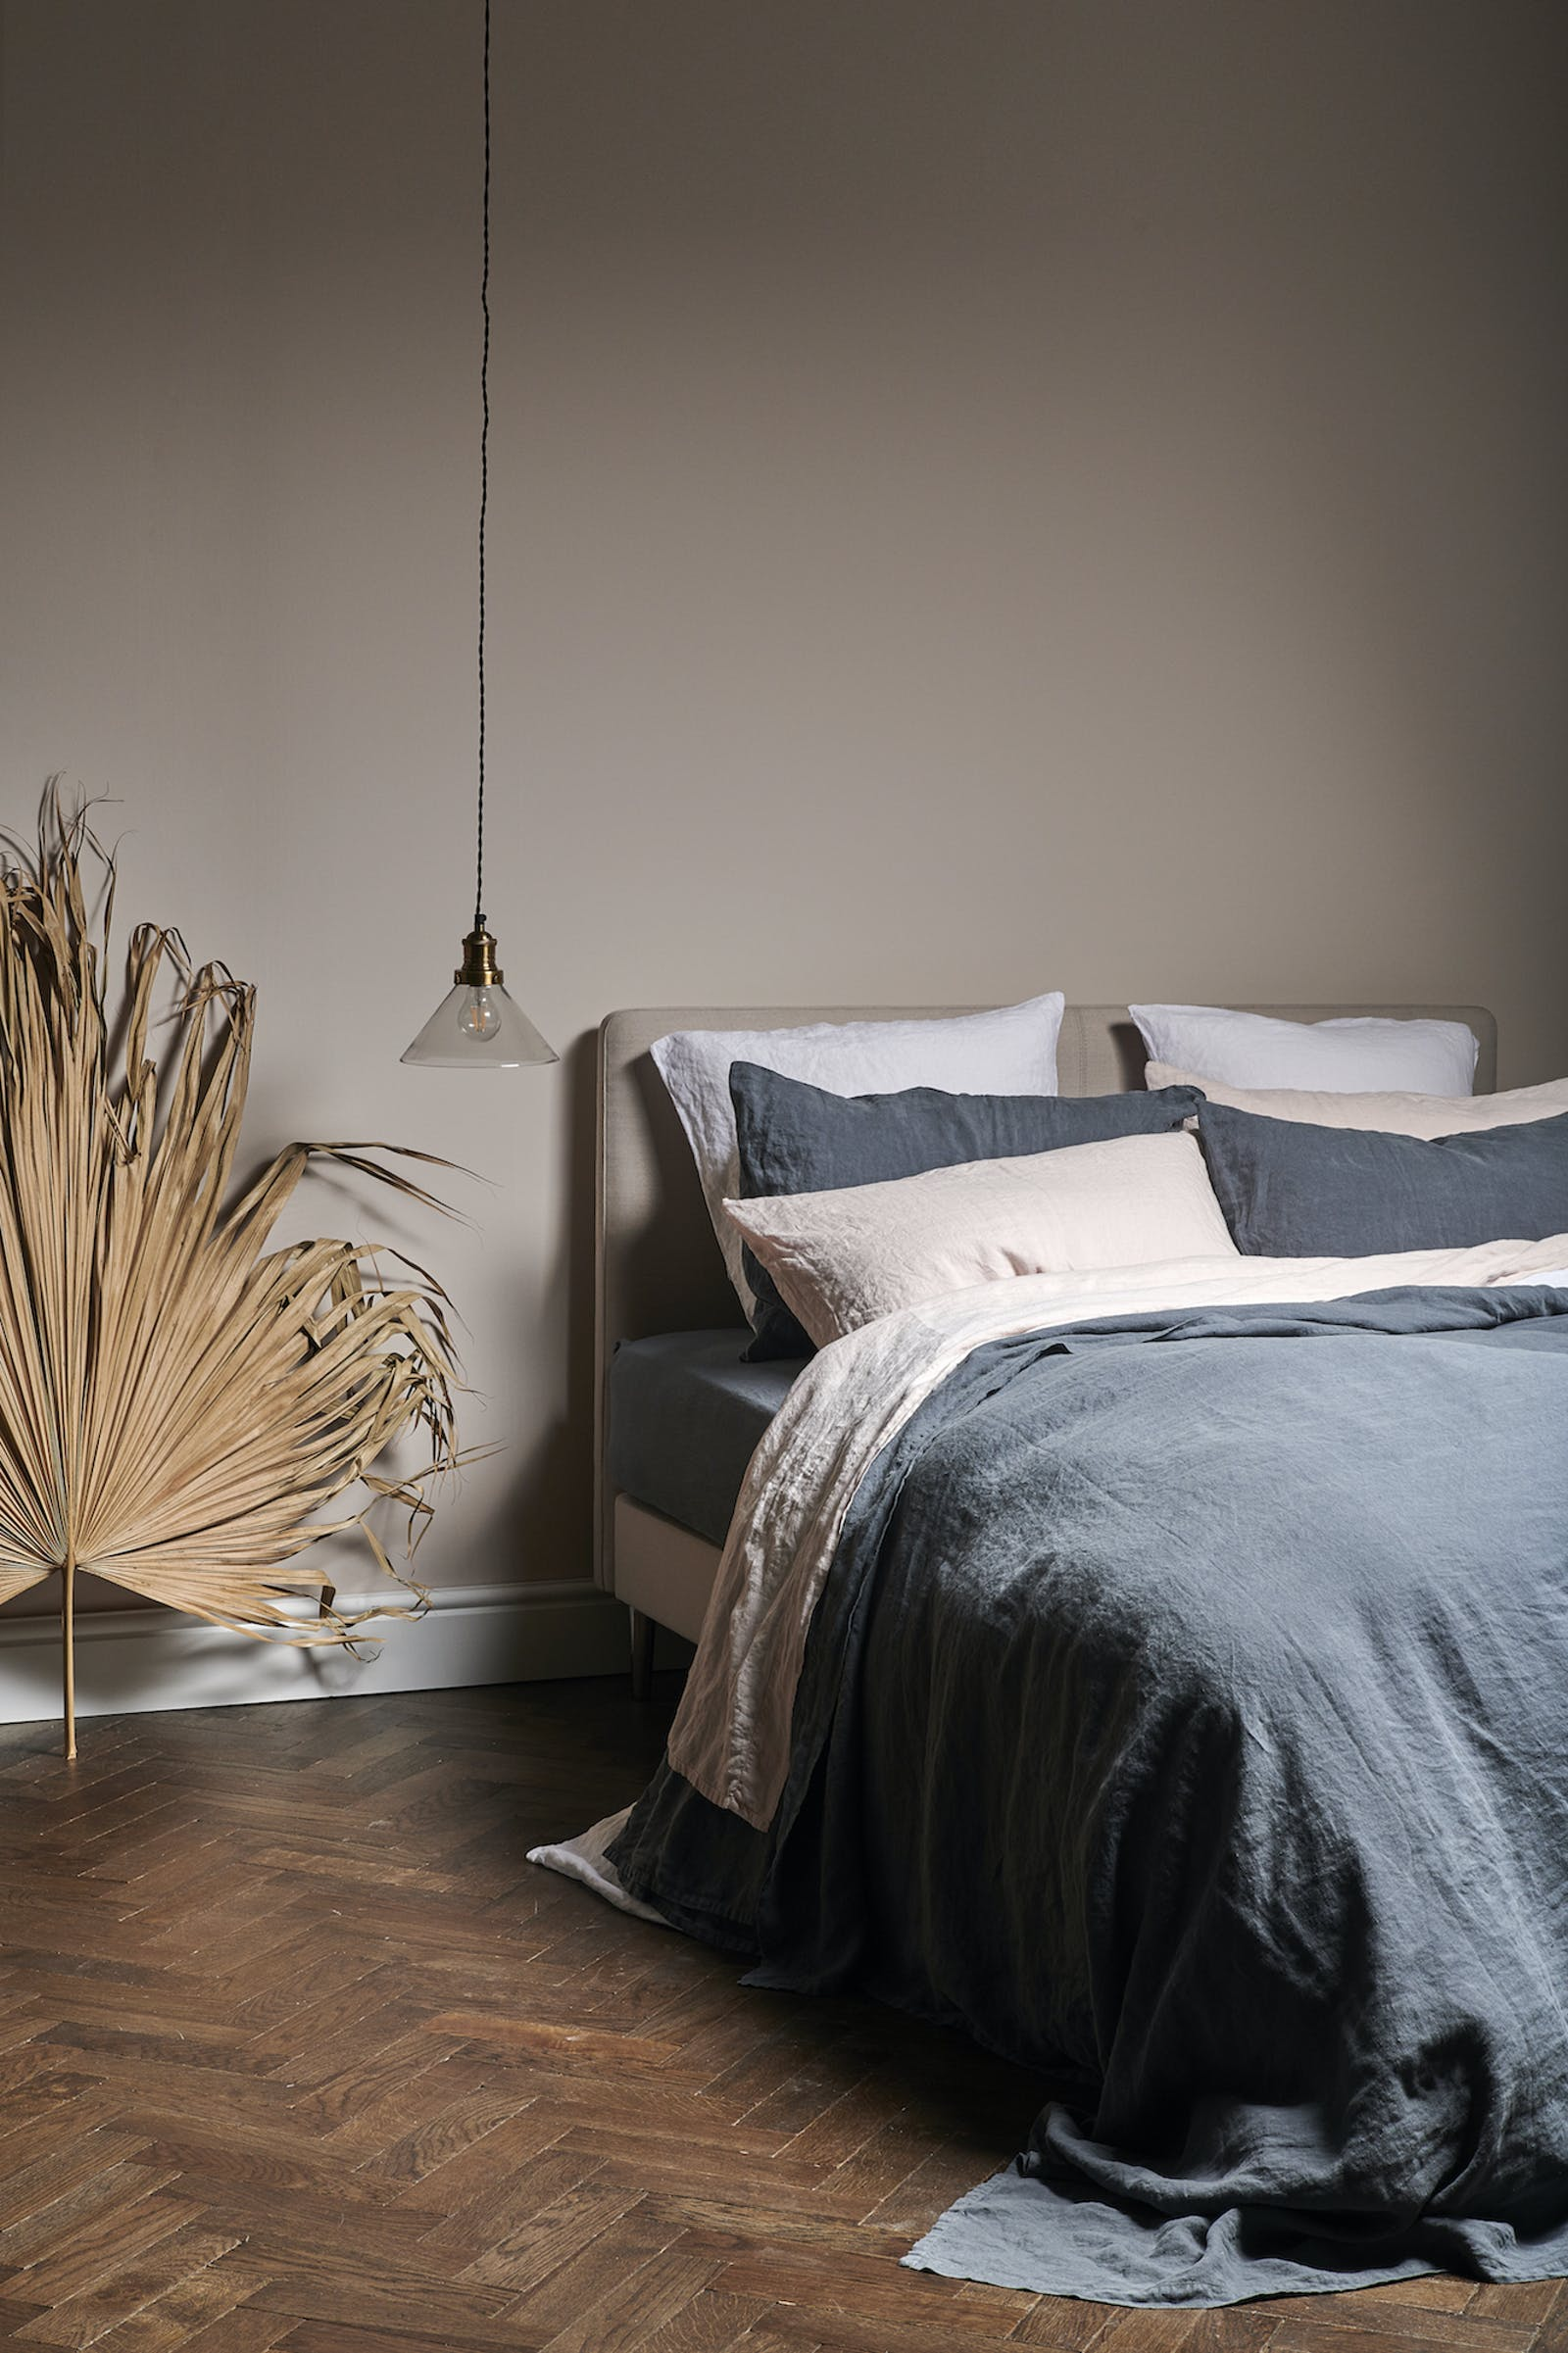 Tranquil bedroom with muted colours and layered linen bedding in beige and ink blue